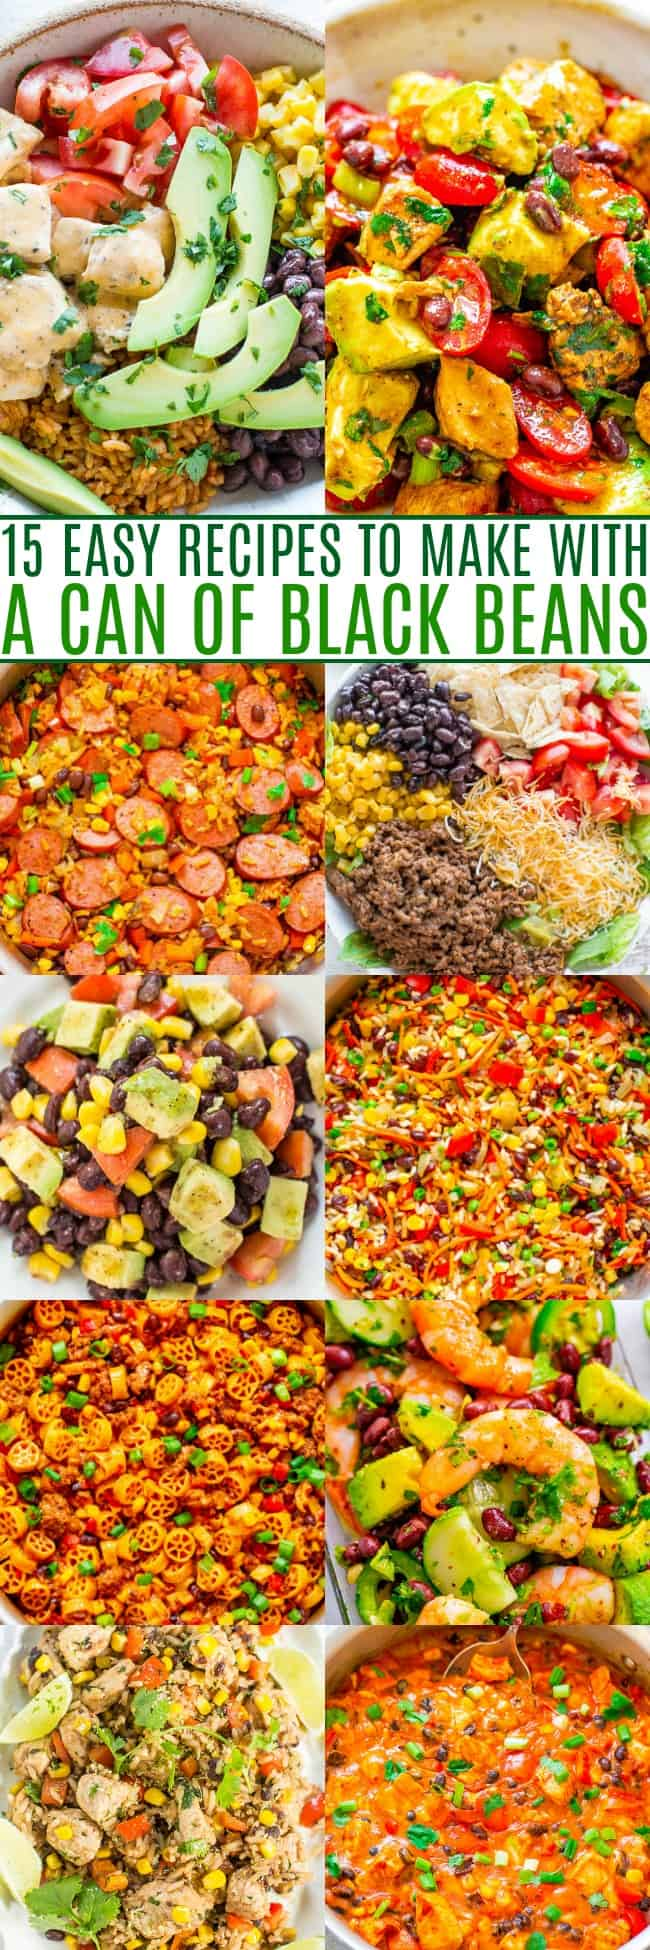 15 Easy Recipes To Make With A Can Of Black Beans - When you open your pantry and see a can of black beans, try any of these EASY recipes that are all UNDER 30-MINUTES to make!! There are chicken, beef, shrimp, sausage, vegetarian, and vegan recipes! Something for everyone and guaranteed DELICIOUS!!